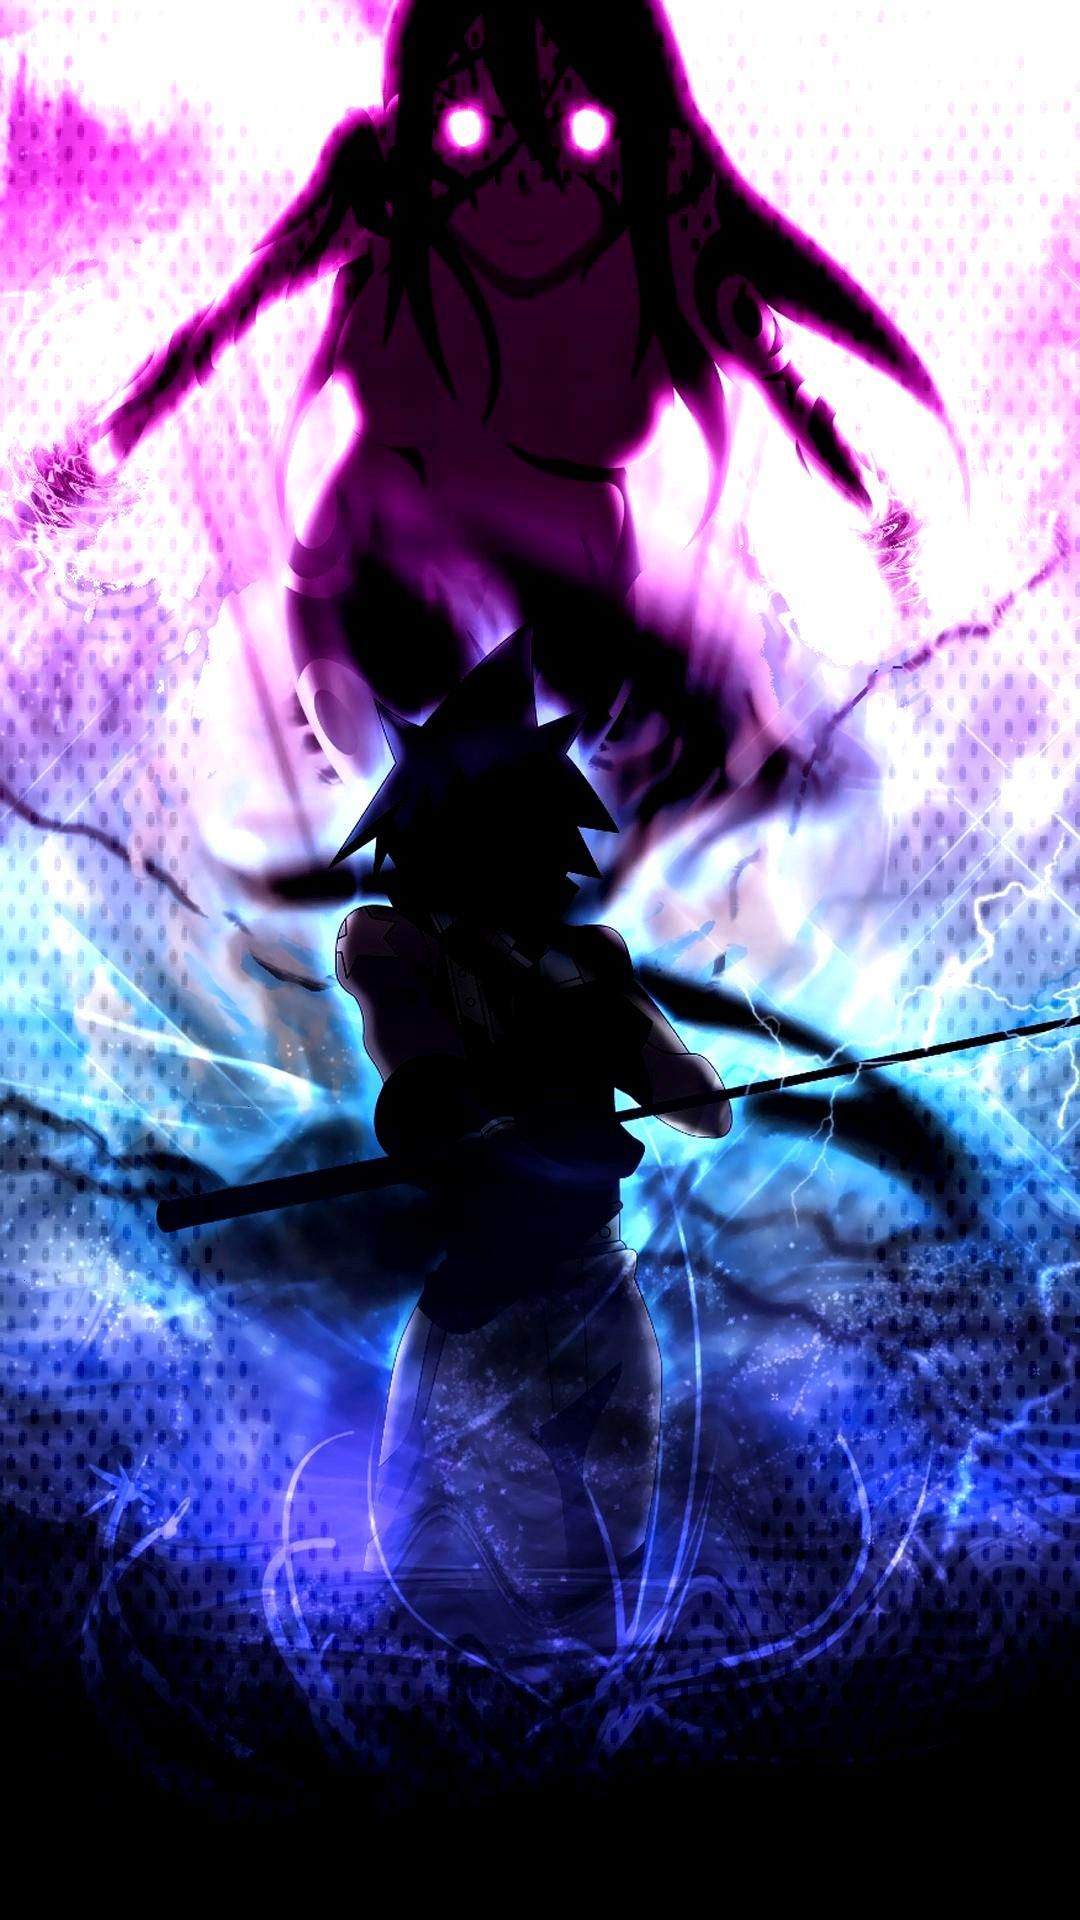 Death The Kid Soul Eater Background Image Death The Kid Soul Eater Background Image